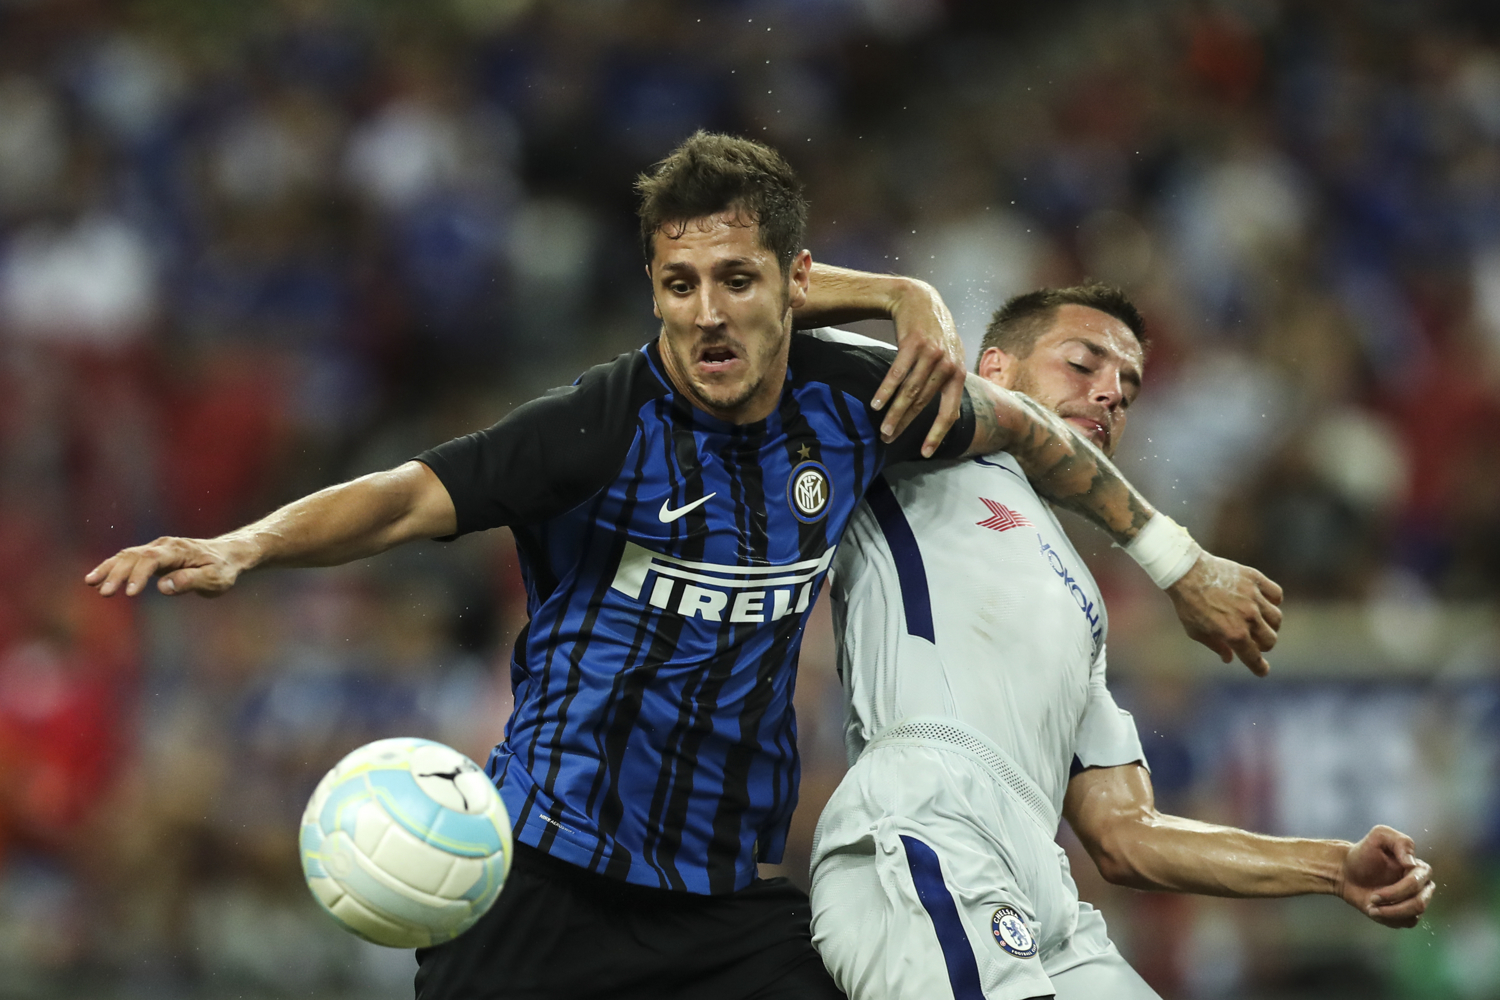 Soccer Football - Chelsea v Inter Milan - International Champions Cup Singapore - Singapore - July 29, 2017Inter Milan's Stevan Jovetic in action against Chelsea's Cesar Azpilicueta. REUTERS/Yong Teck Lim